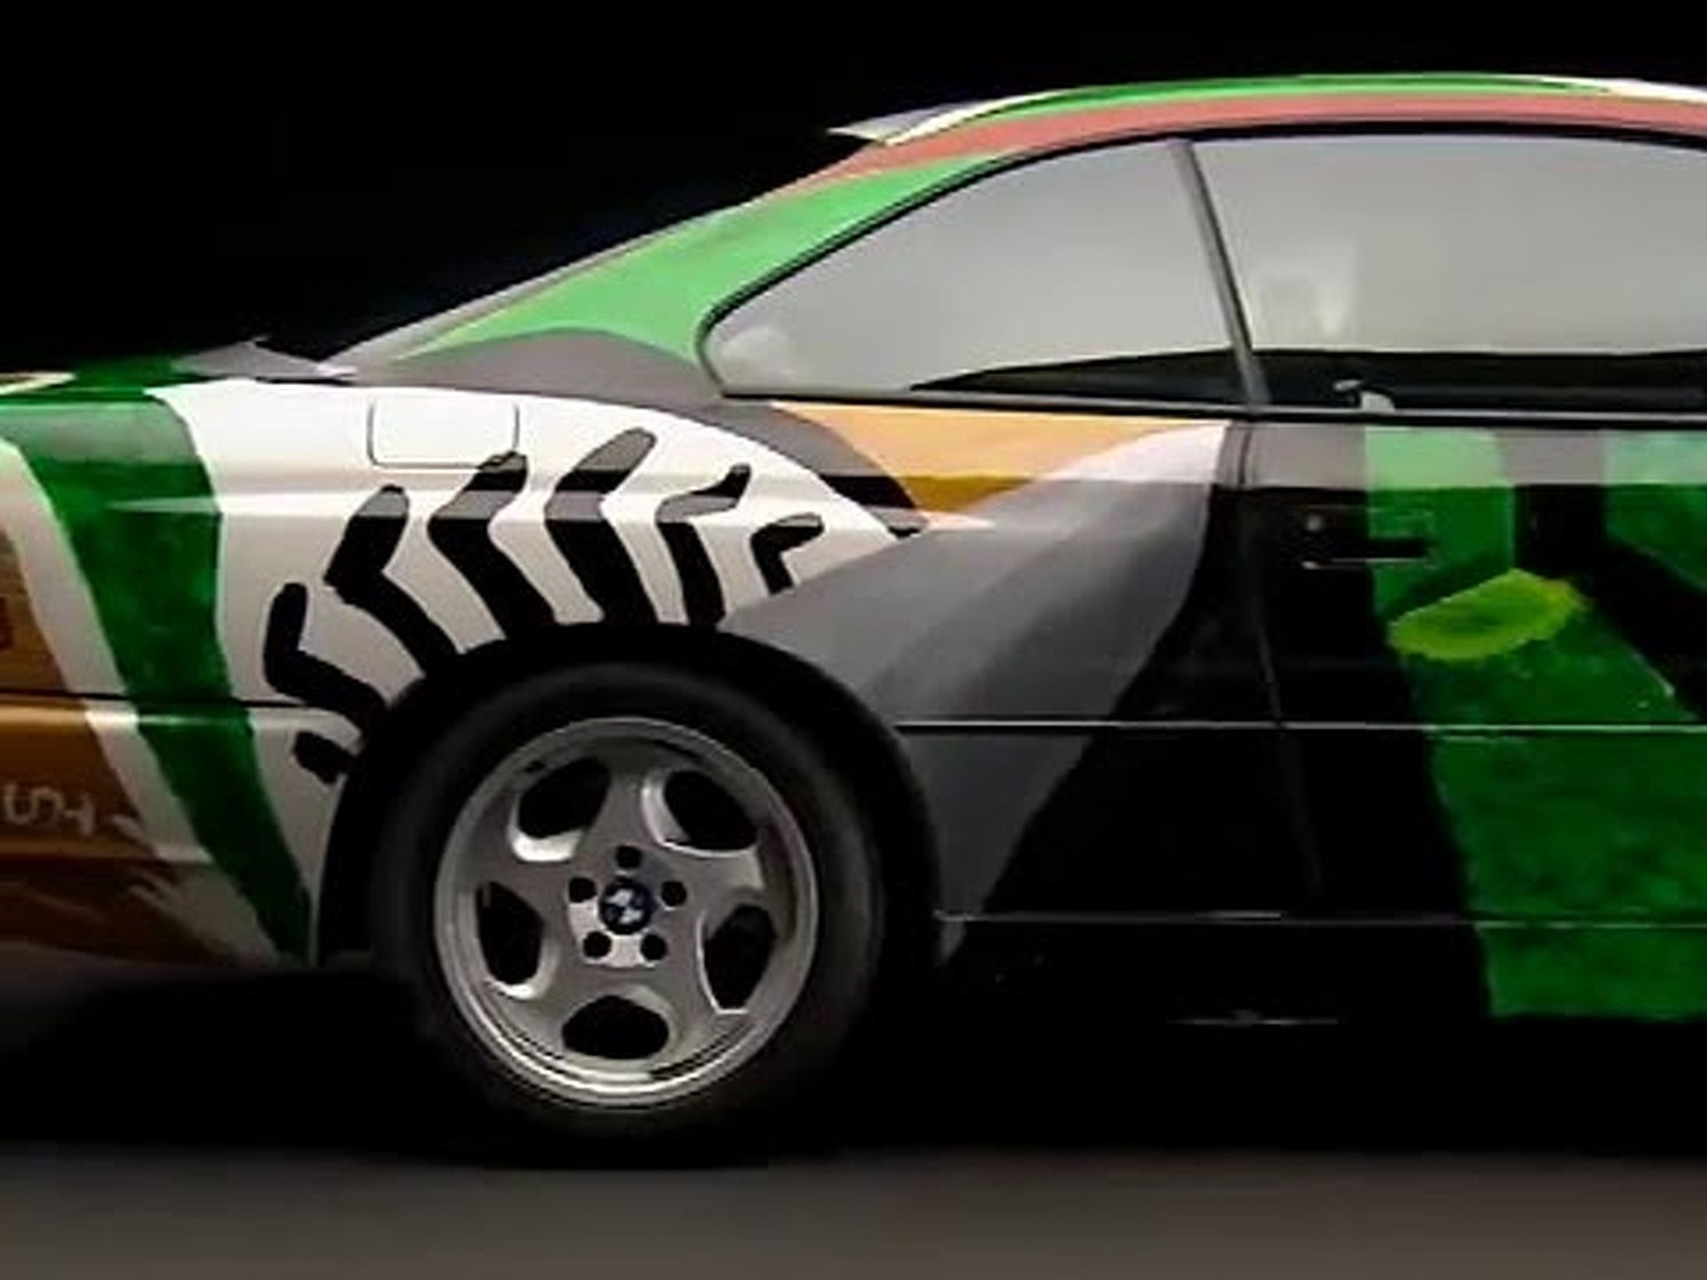 BMW 850 CSi Art Car von David Hockney, 1995